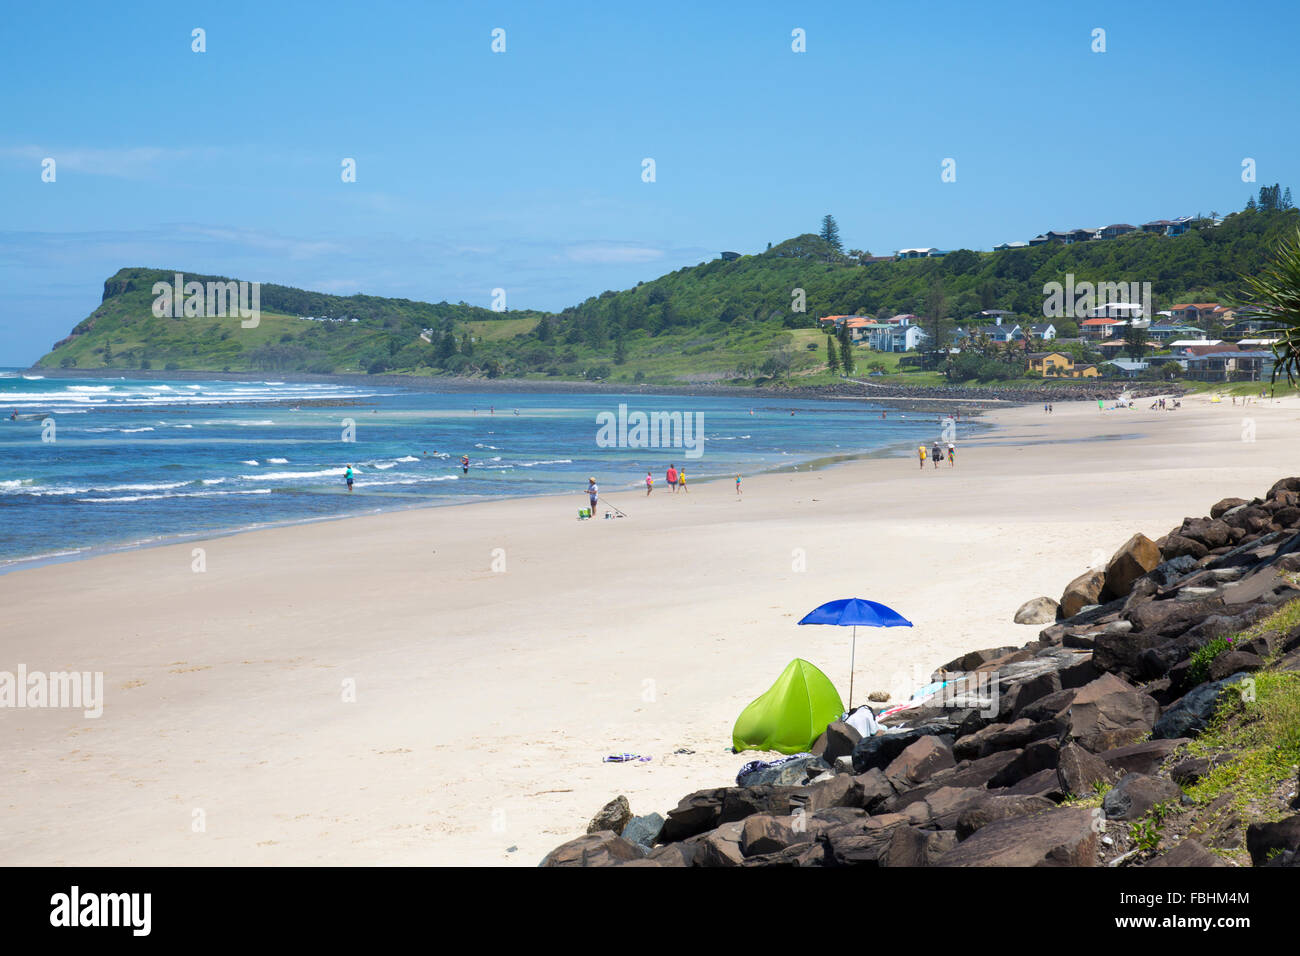 Lennox Head seaside town and its seven mile beach, northern new south wales,australia - Stock Image